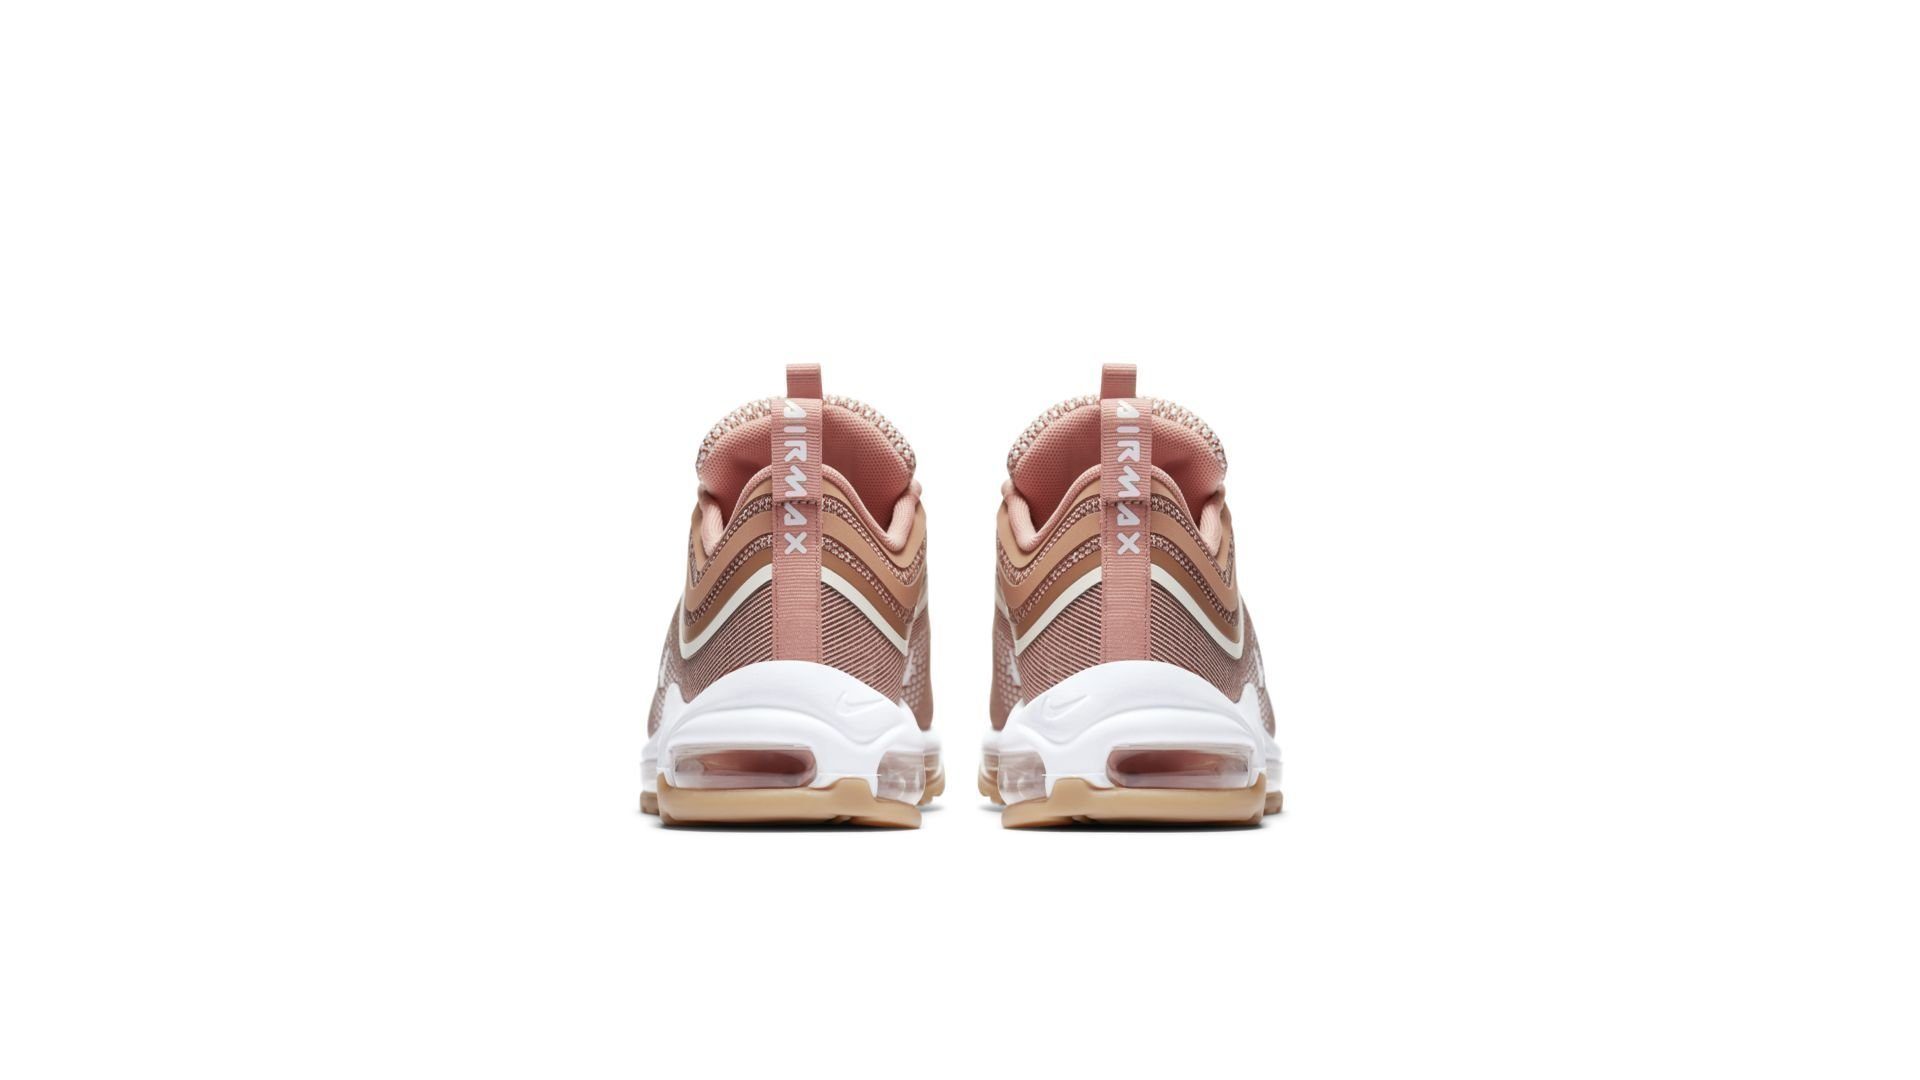 Nike Wmns Air Max 97 Ultra 17 Rose Gold (917704-600)